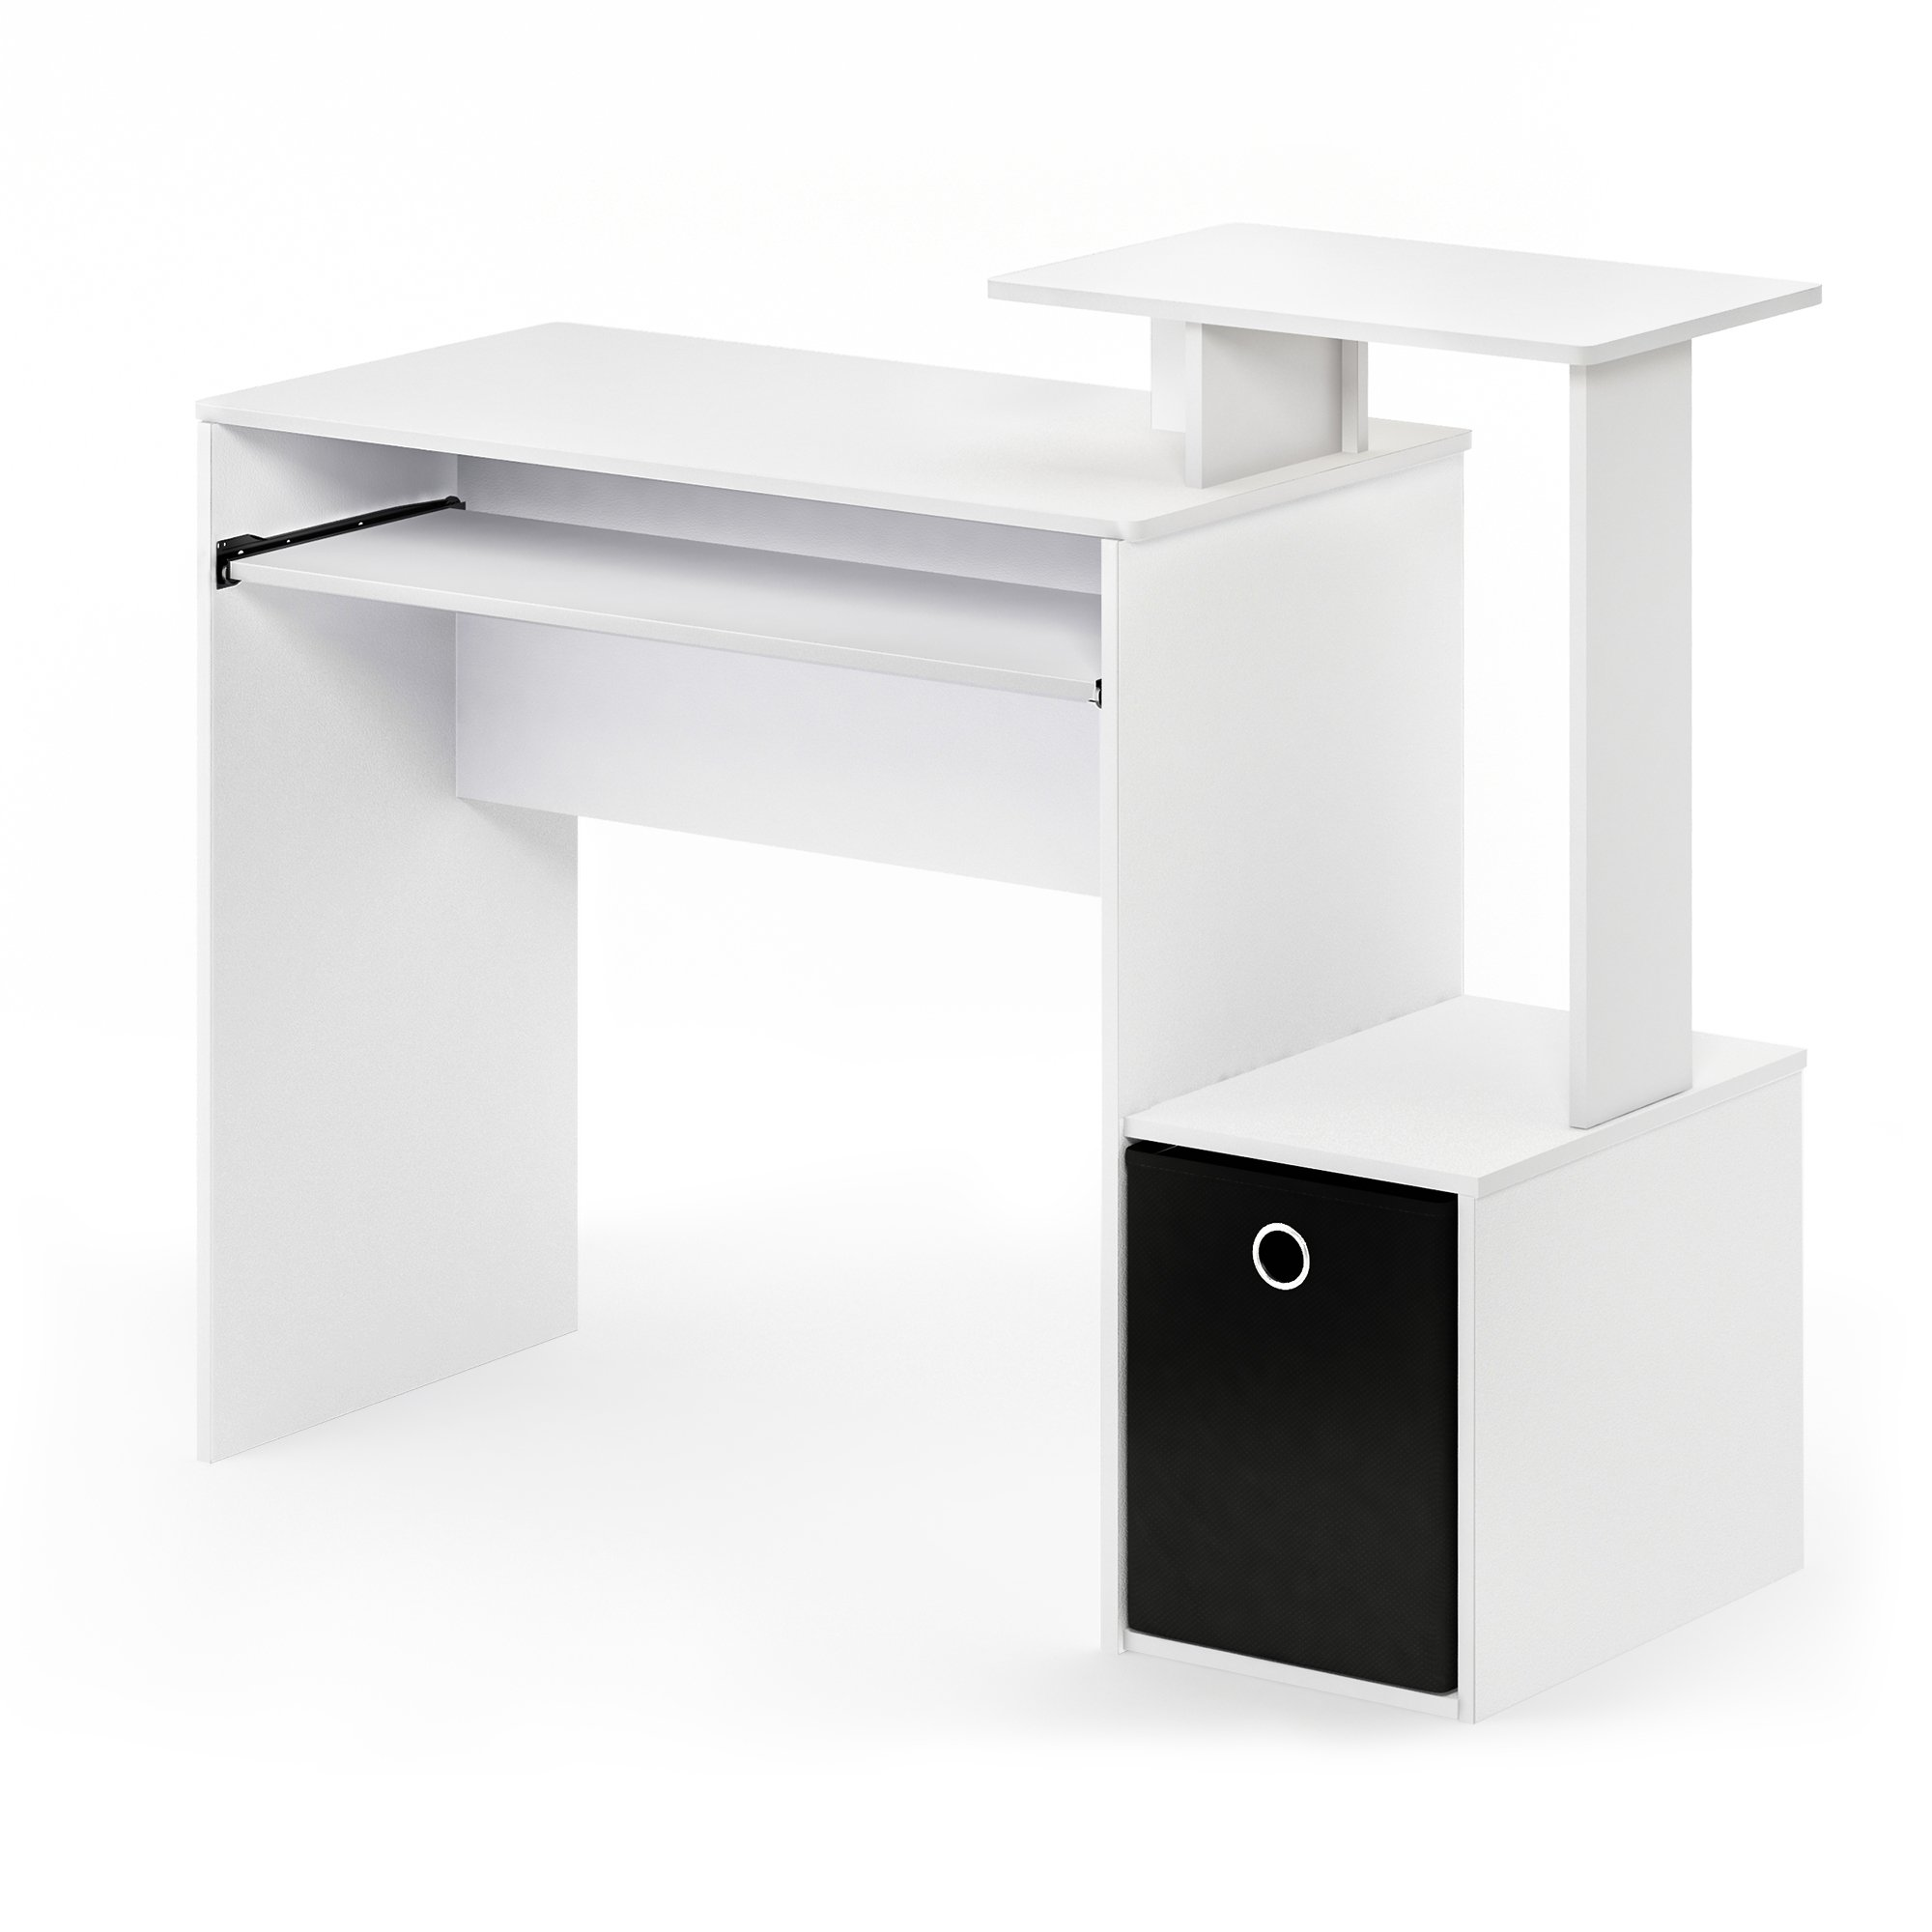 FURINNO 12095WH/BK Econ Home Computer Desk with Shelves, White/Black by Furinno